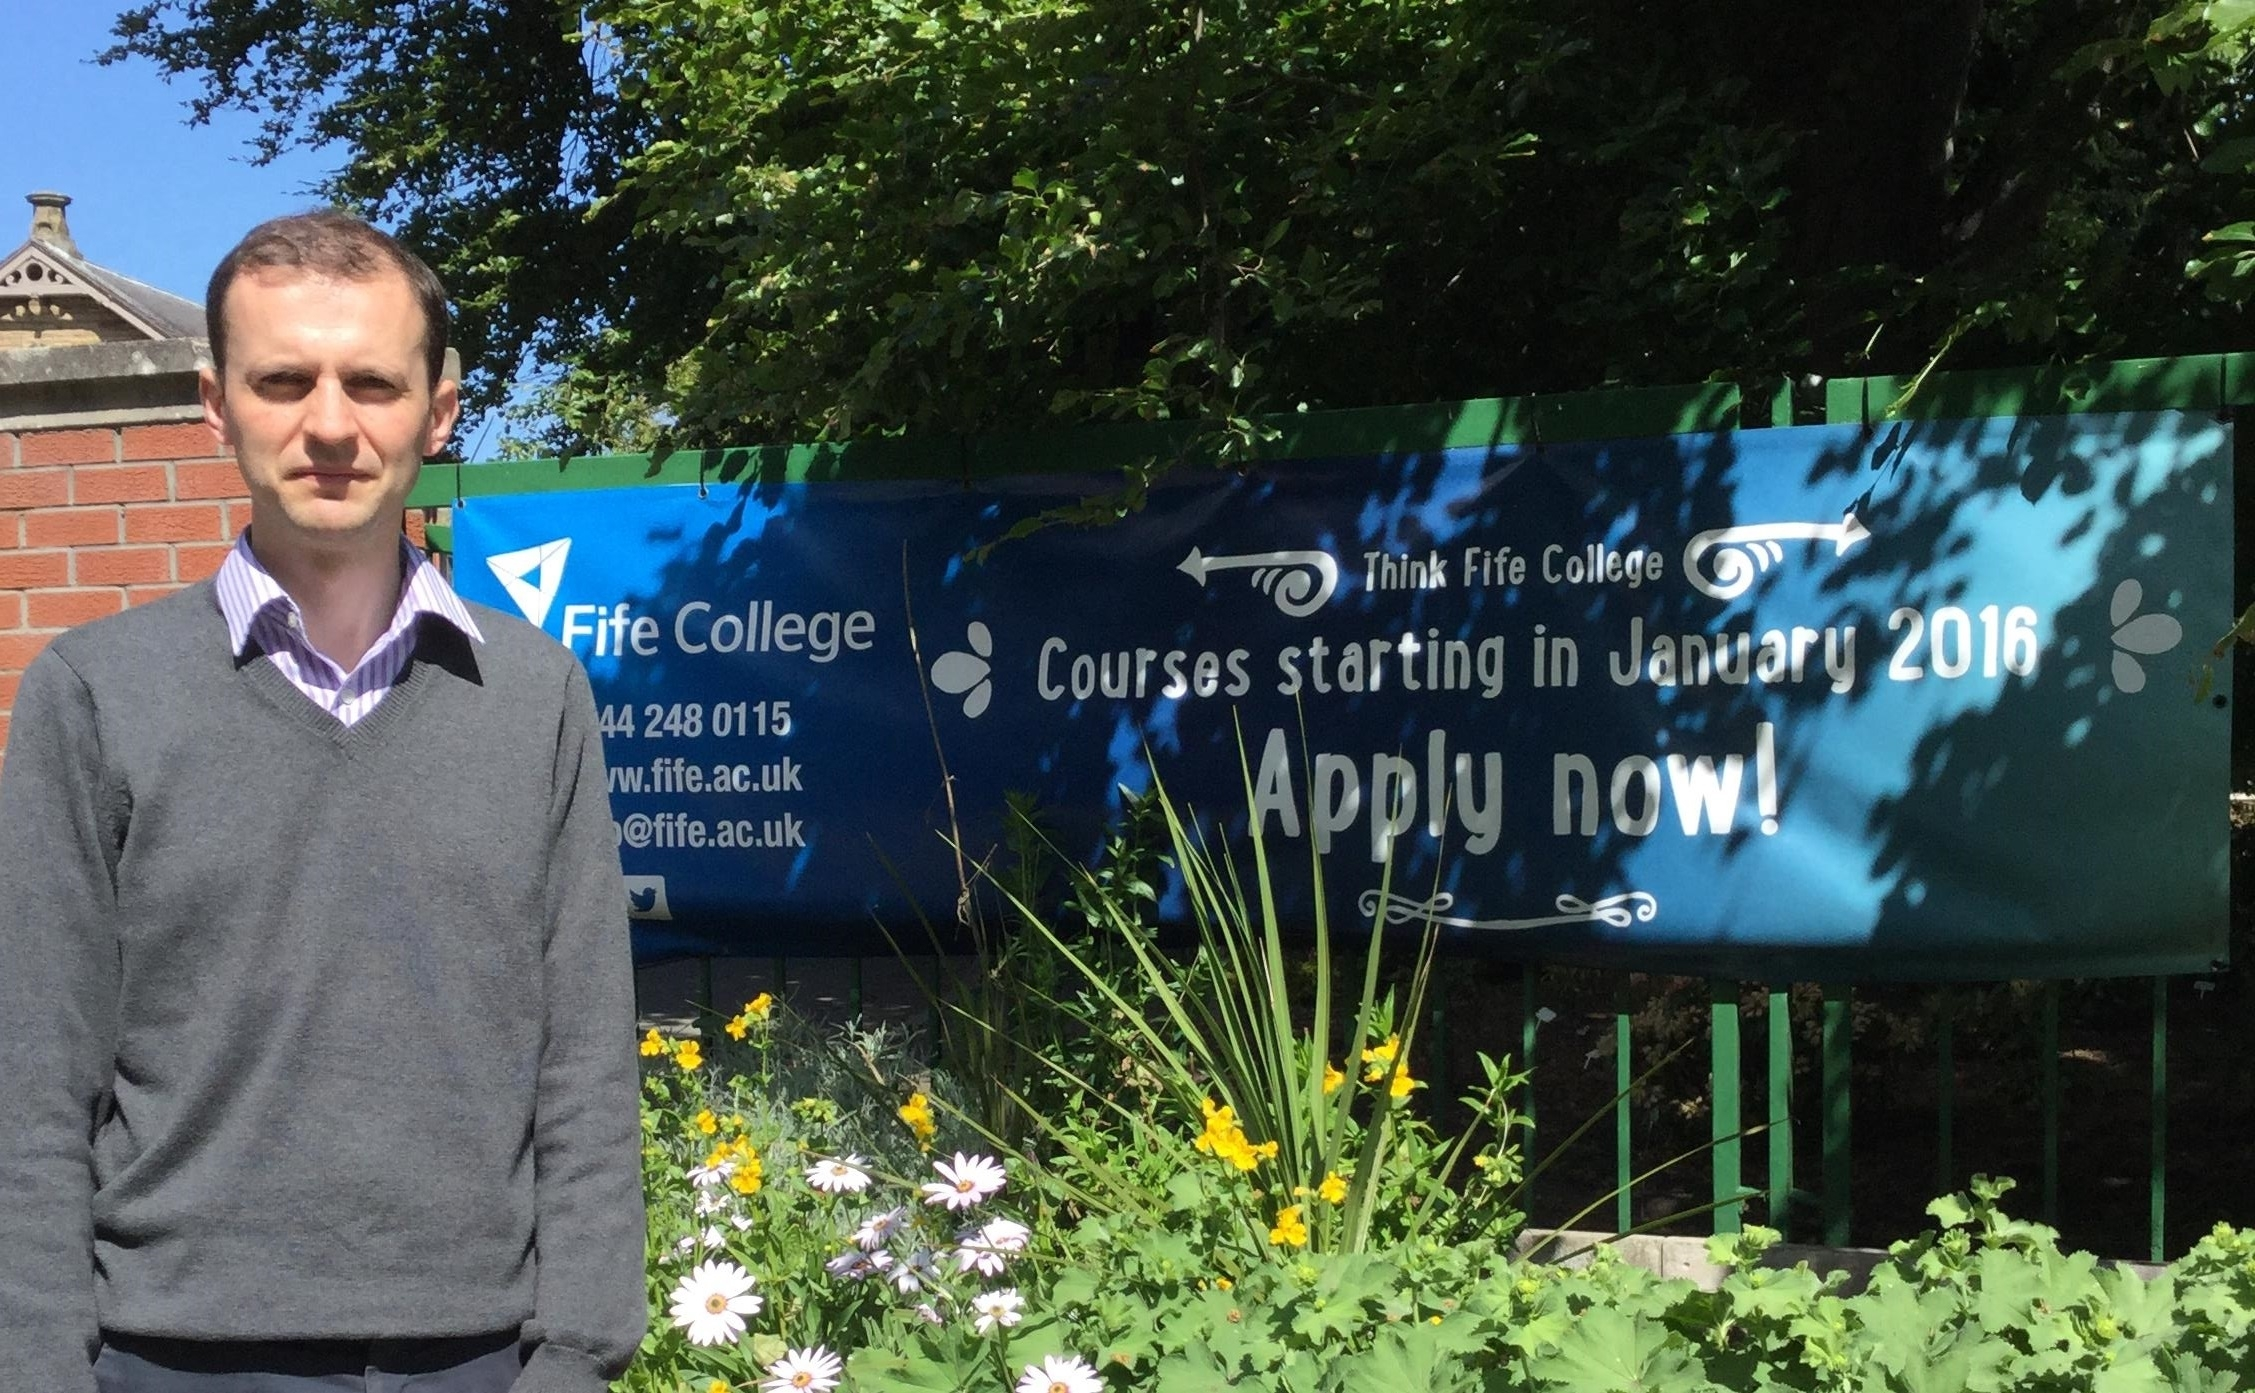 North East Fife MP Stephen Gethins is raising concerns about further education provision in his constituency.